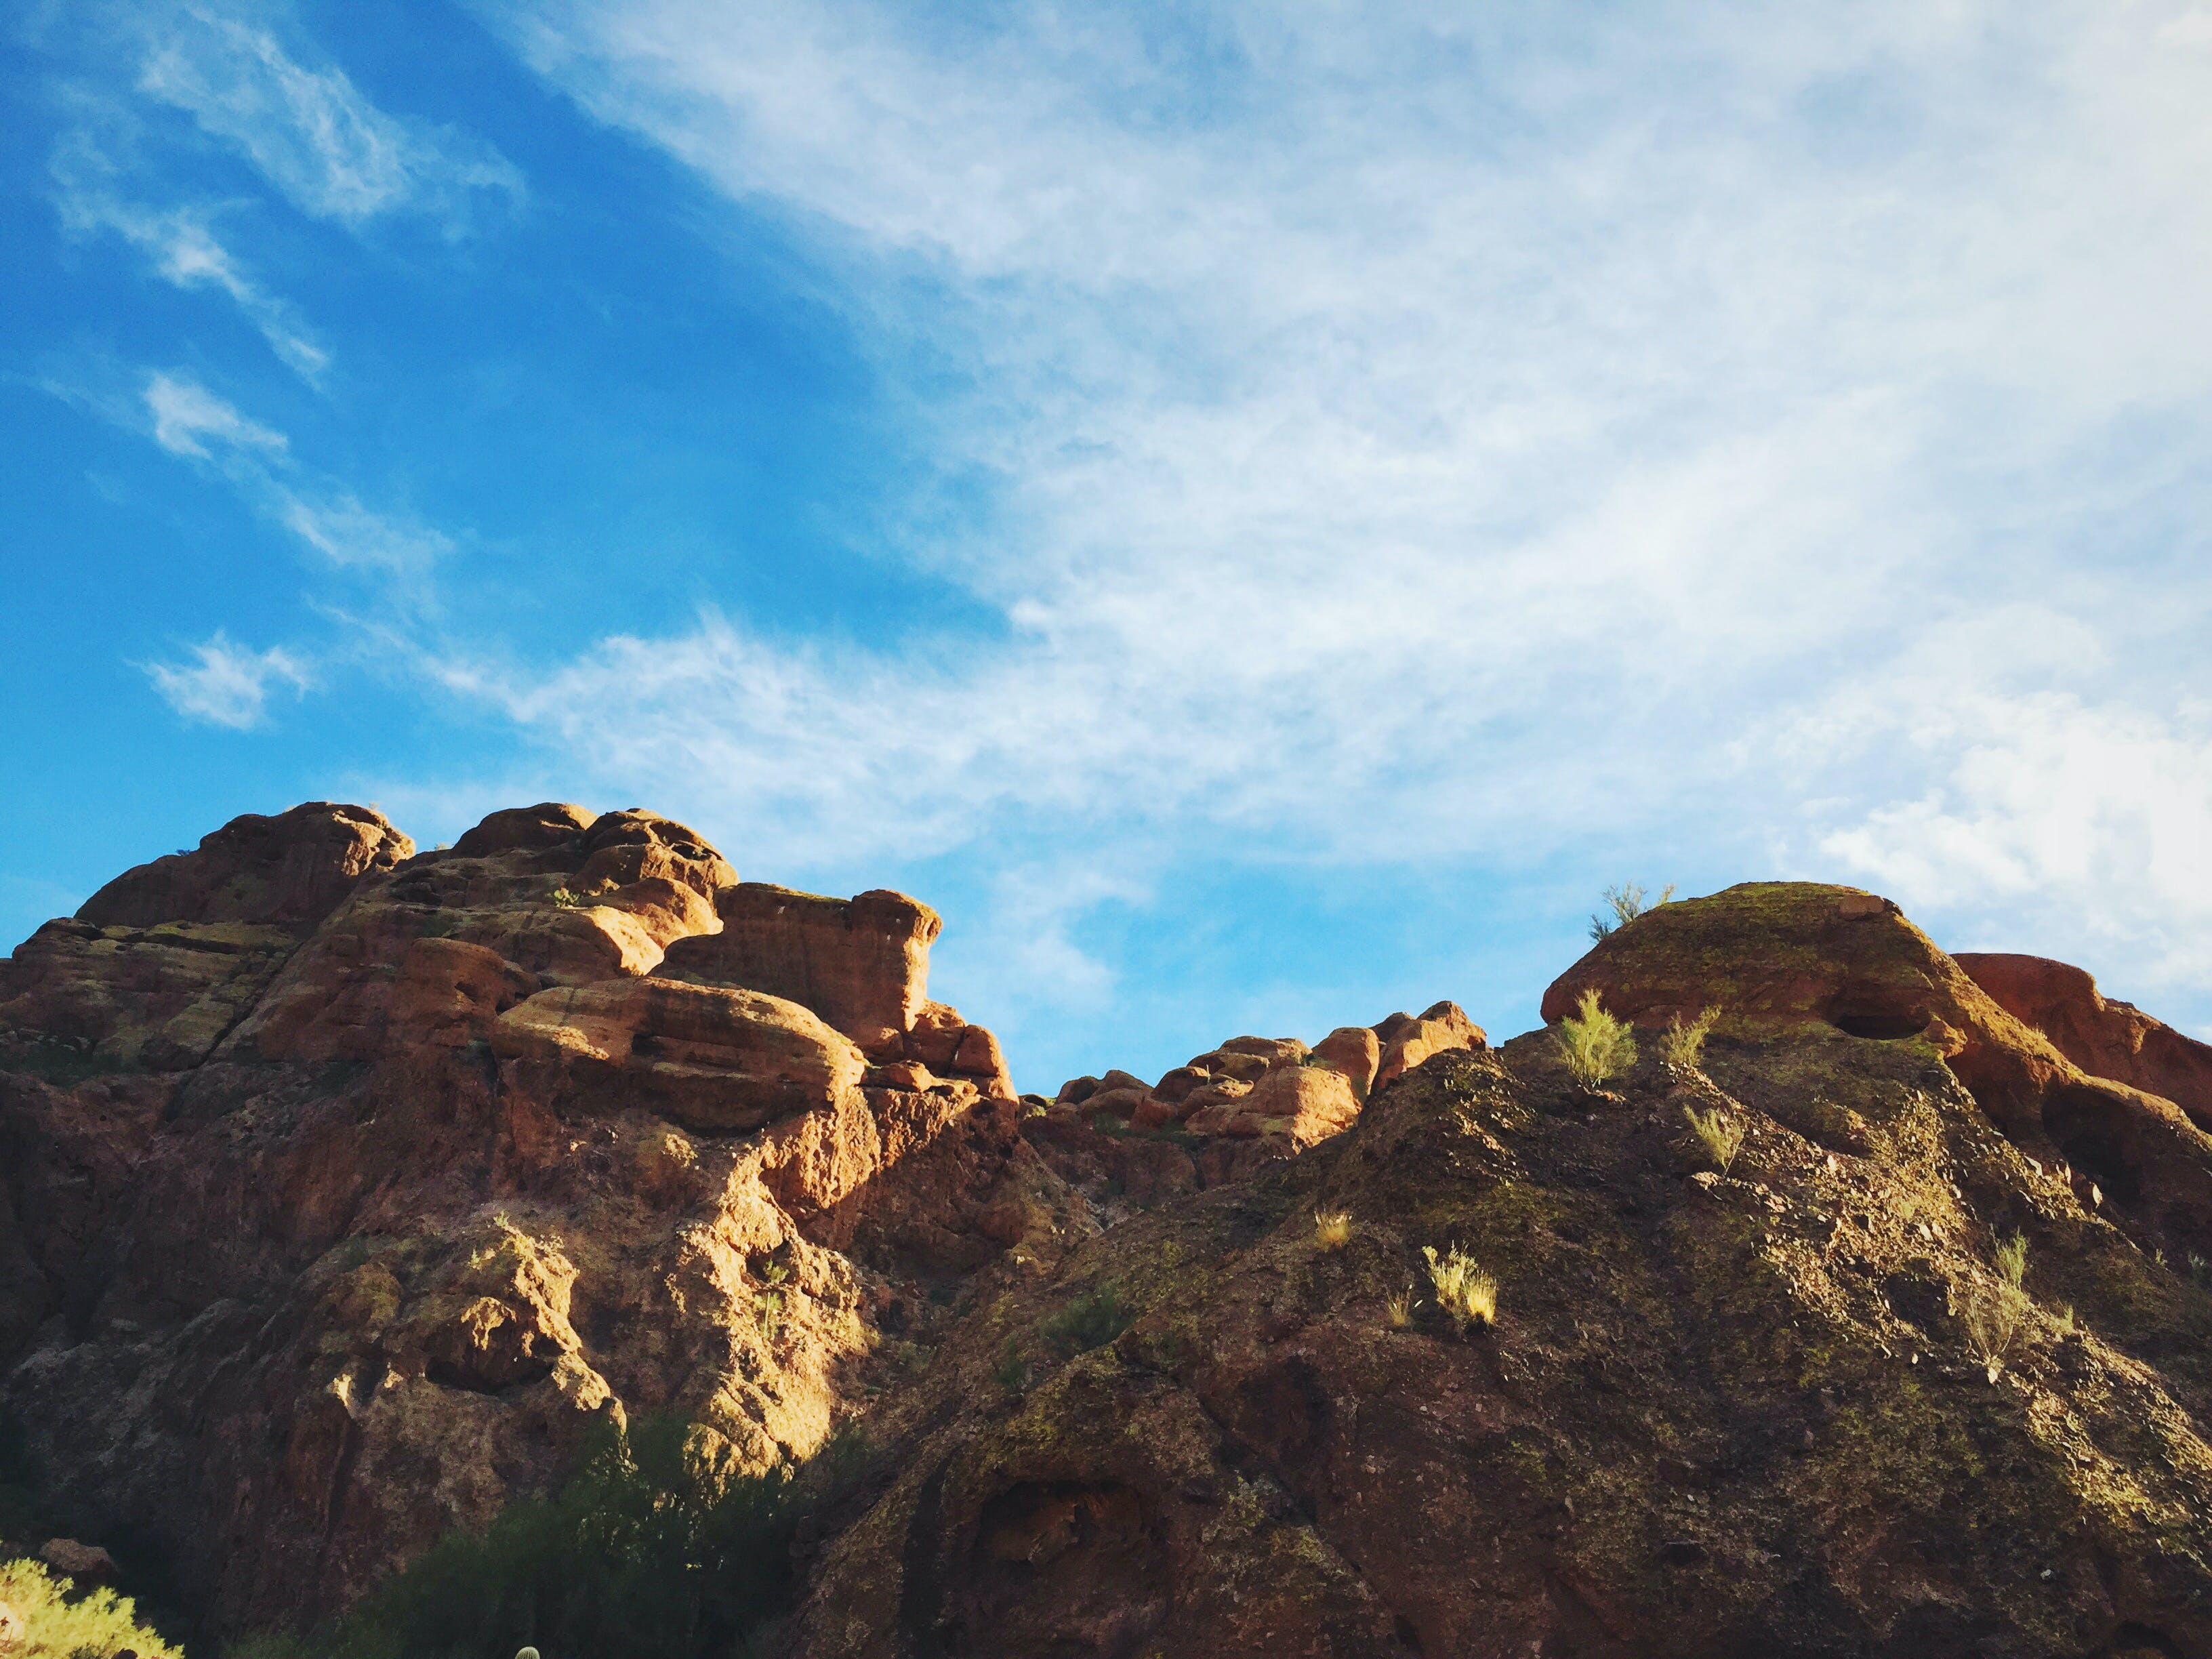 Free stock photo of nature, rocks, hill, adventure